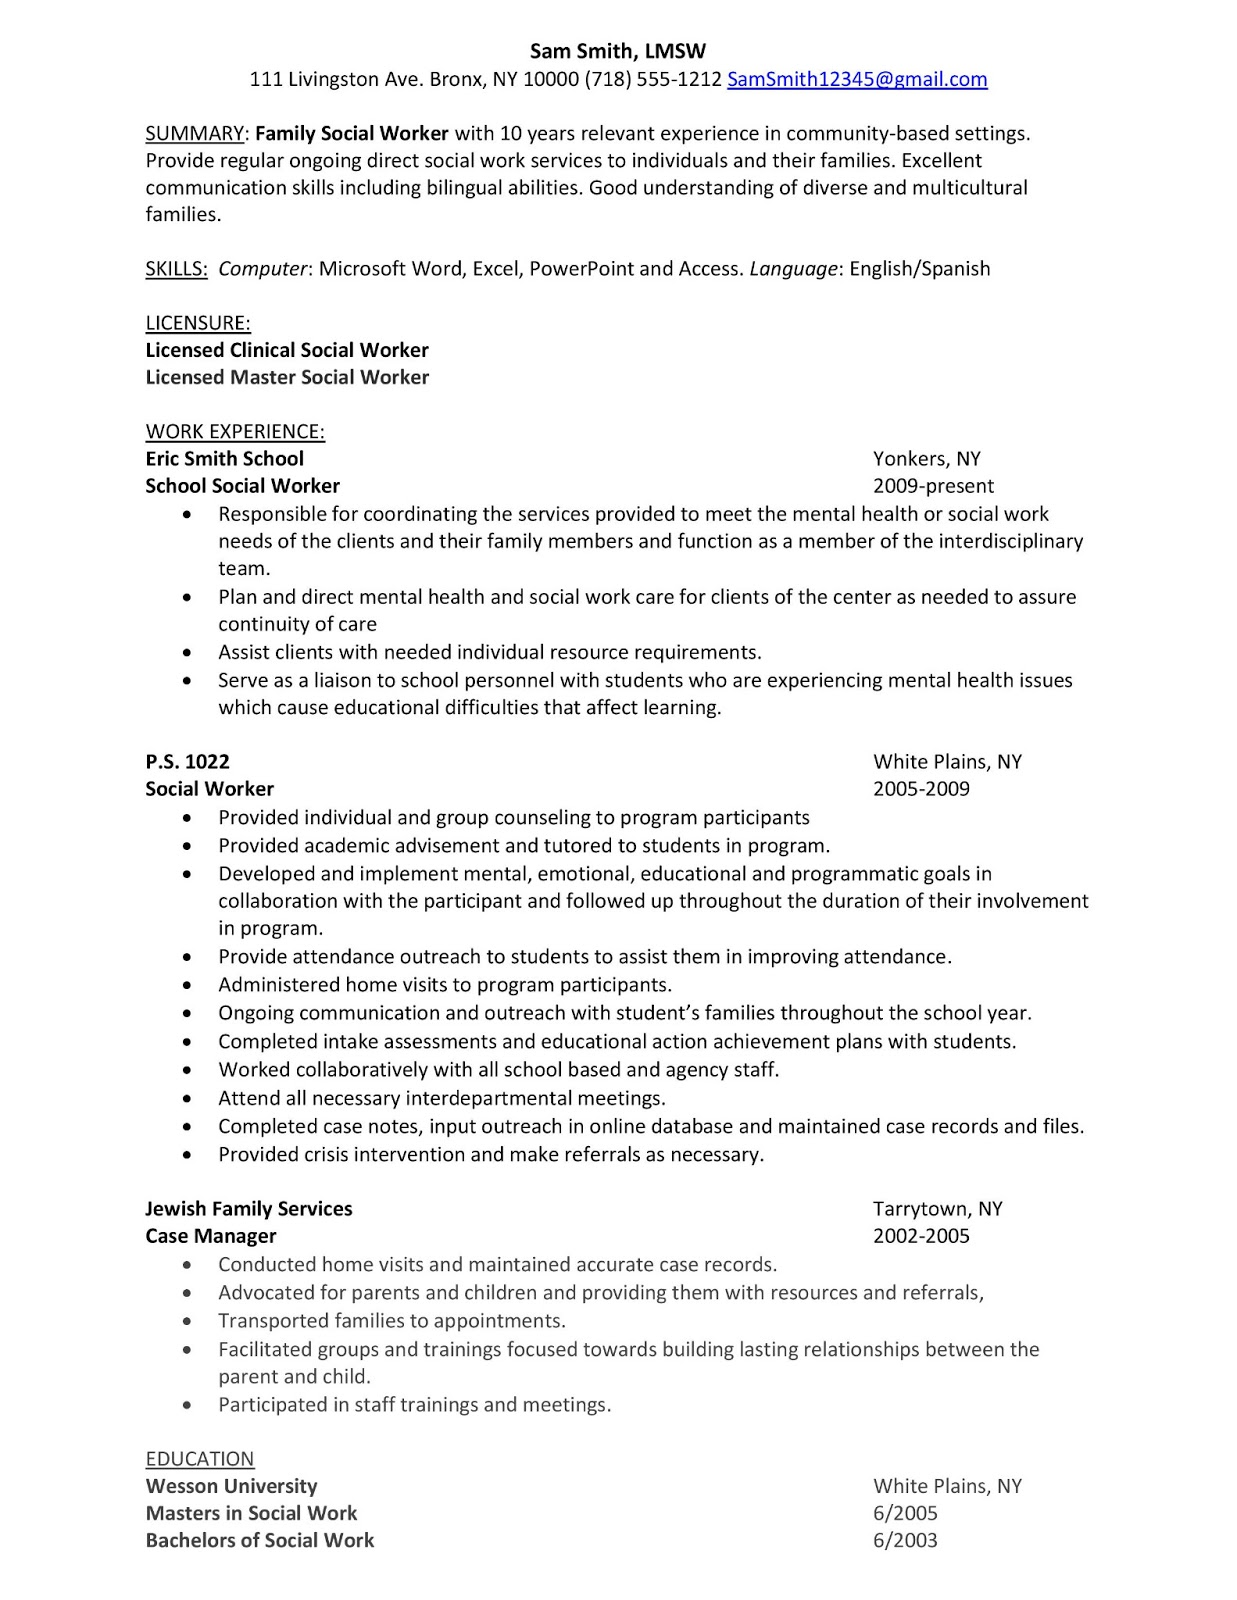 sample resume family social worker